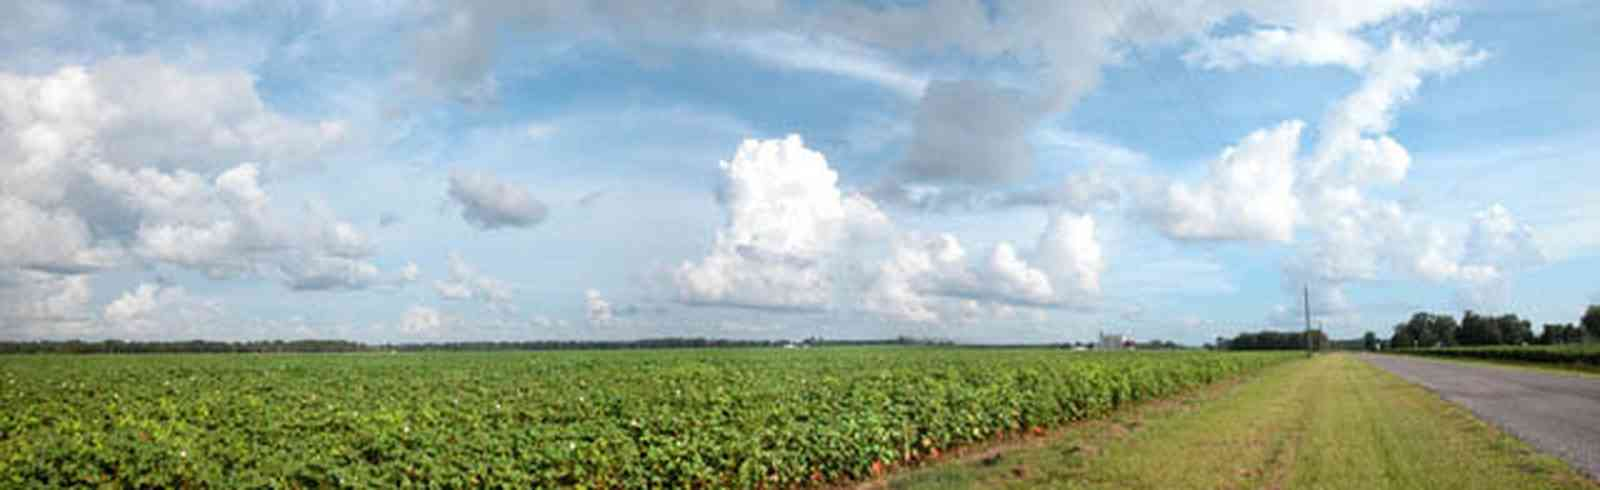 Walnut-Hill:-Kansas-Road_04.jpg:  cotton field, planting, soil, farmer, farmland, boil weavil, country road, silo, cumulus cloud,